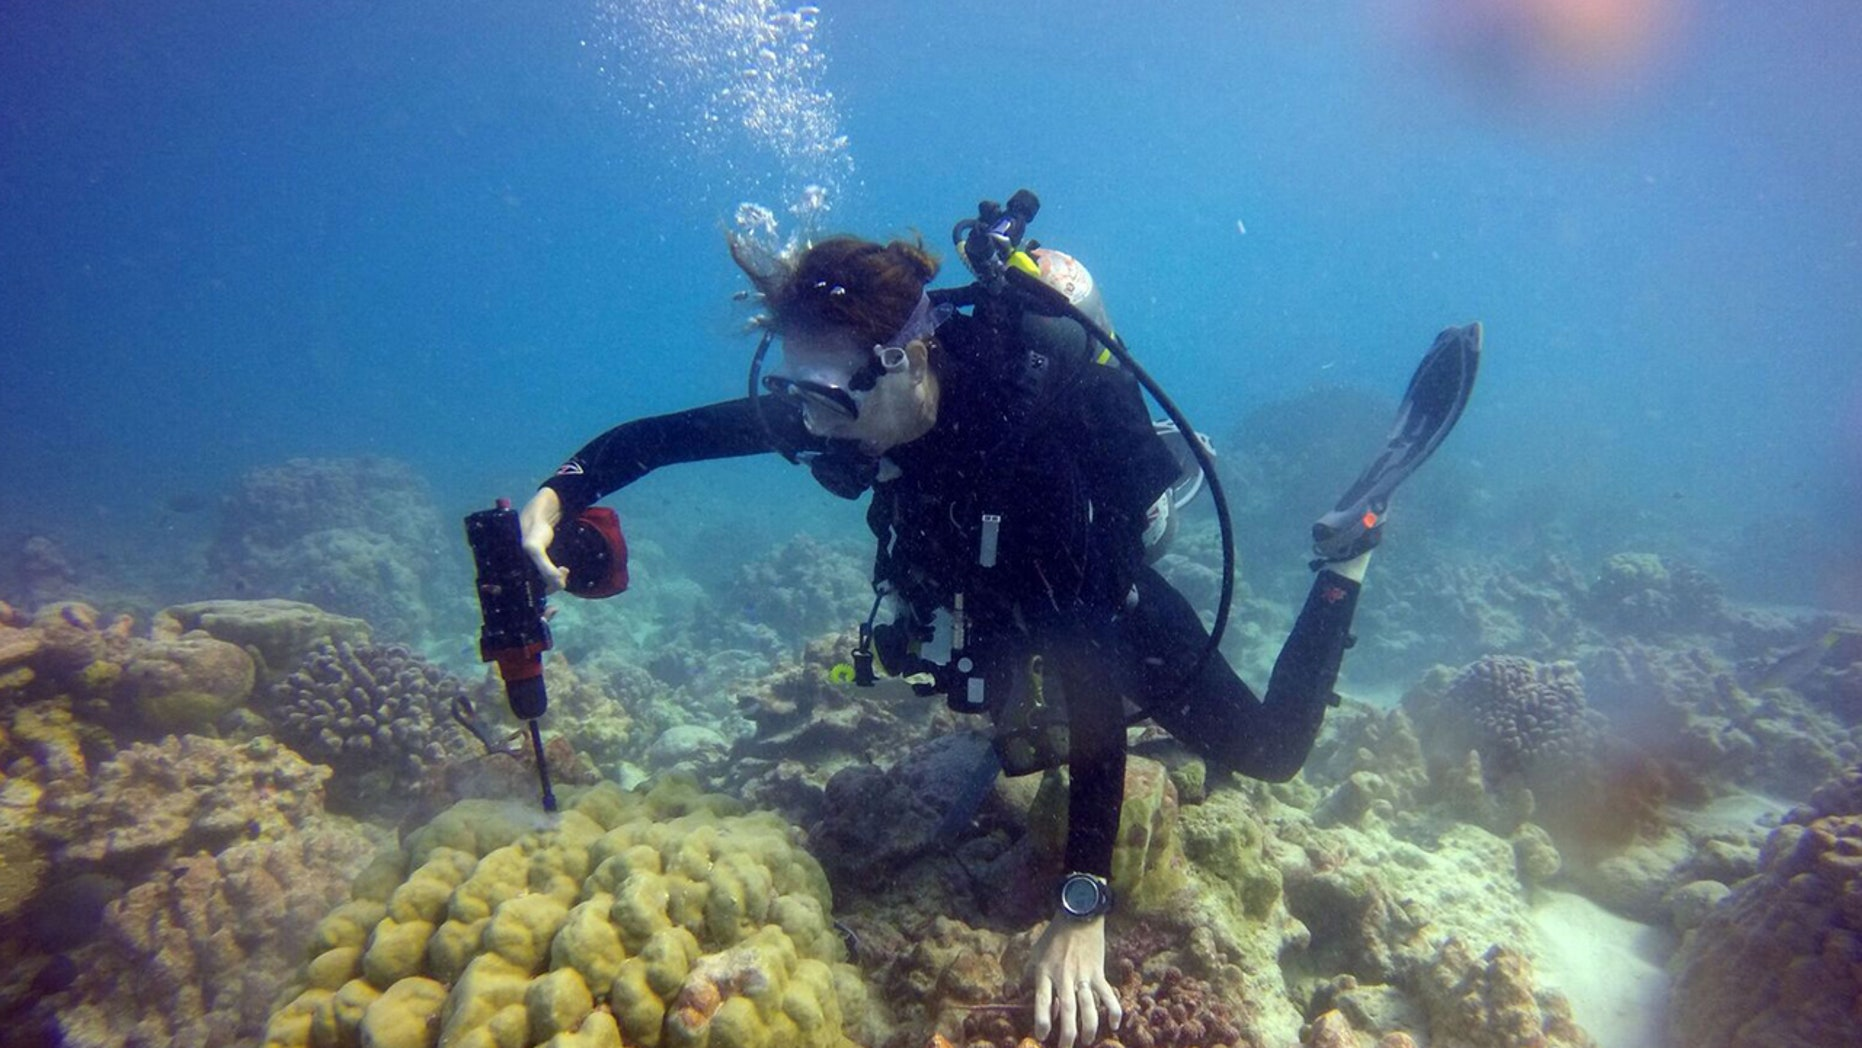 In this photo provided by Kim Cobb, shows Georgia Tech climate scientist Kim Cobb in November at the remote Pacific island of Kiritimati, finding a bit of hope and life amid what in April was a ghost town of dead coral.